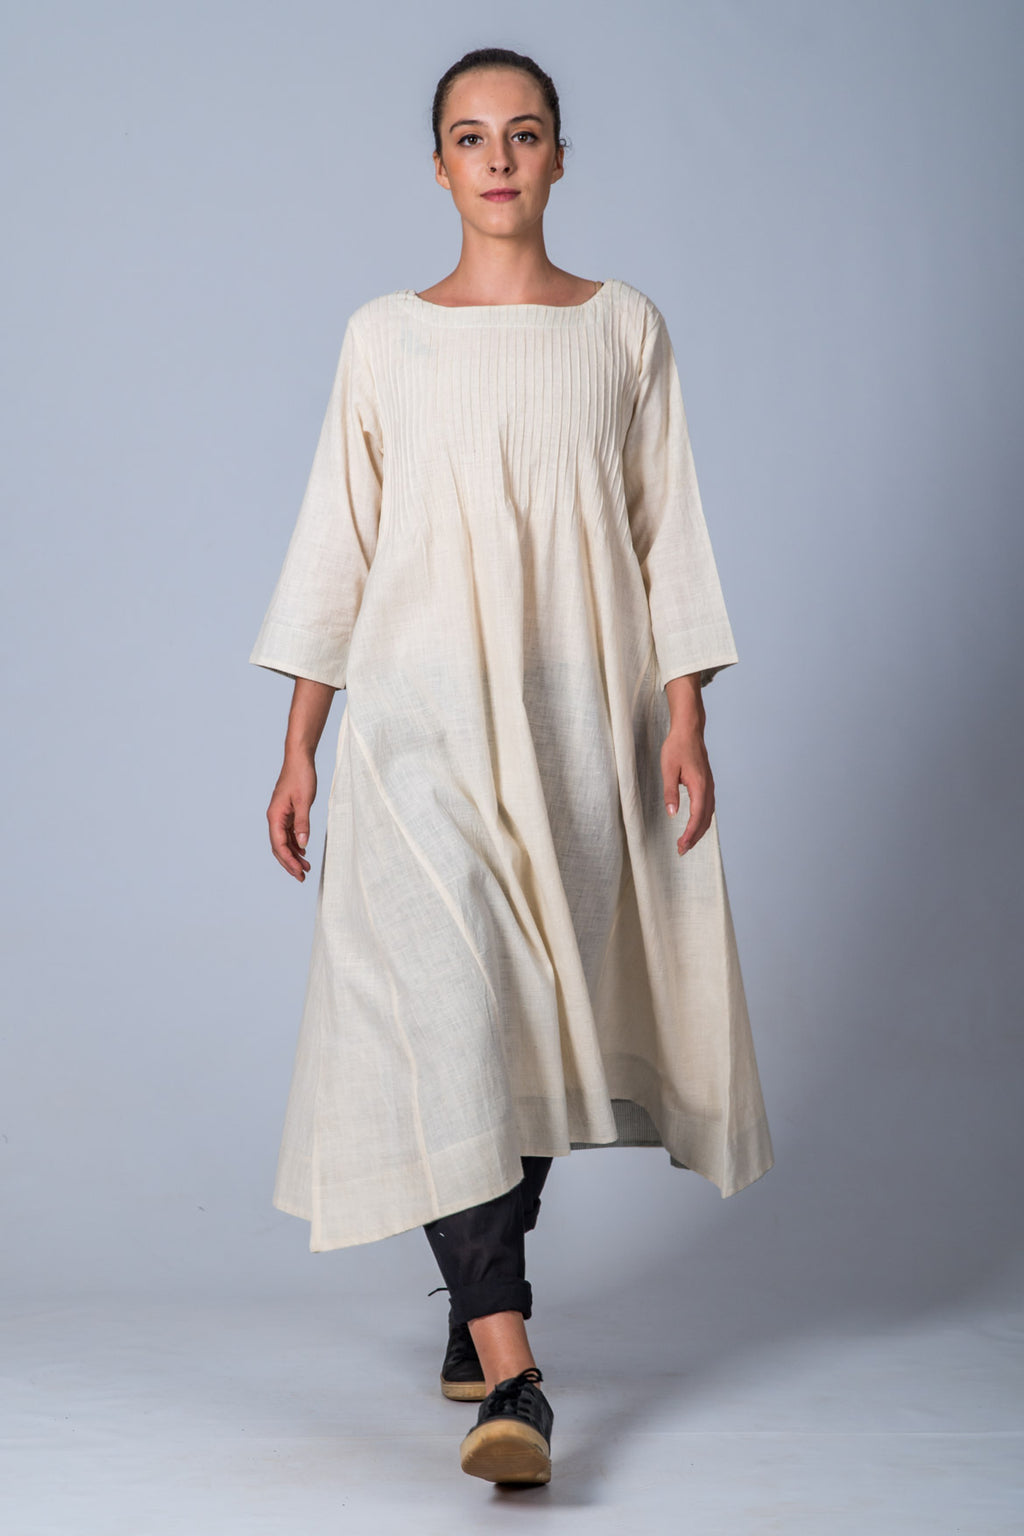 Off-white Handspun Handwoven Dress - UDUPU - Upasana Design Studio